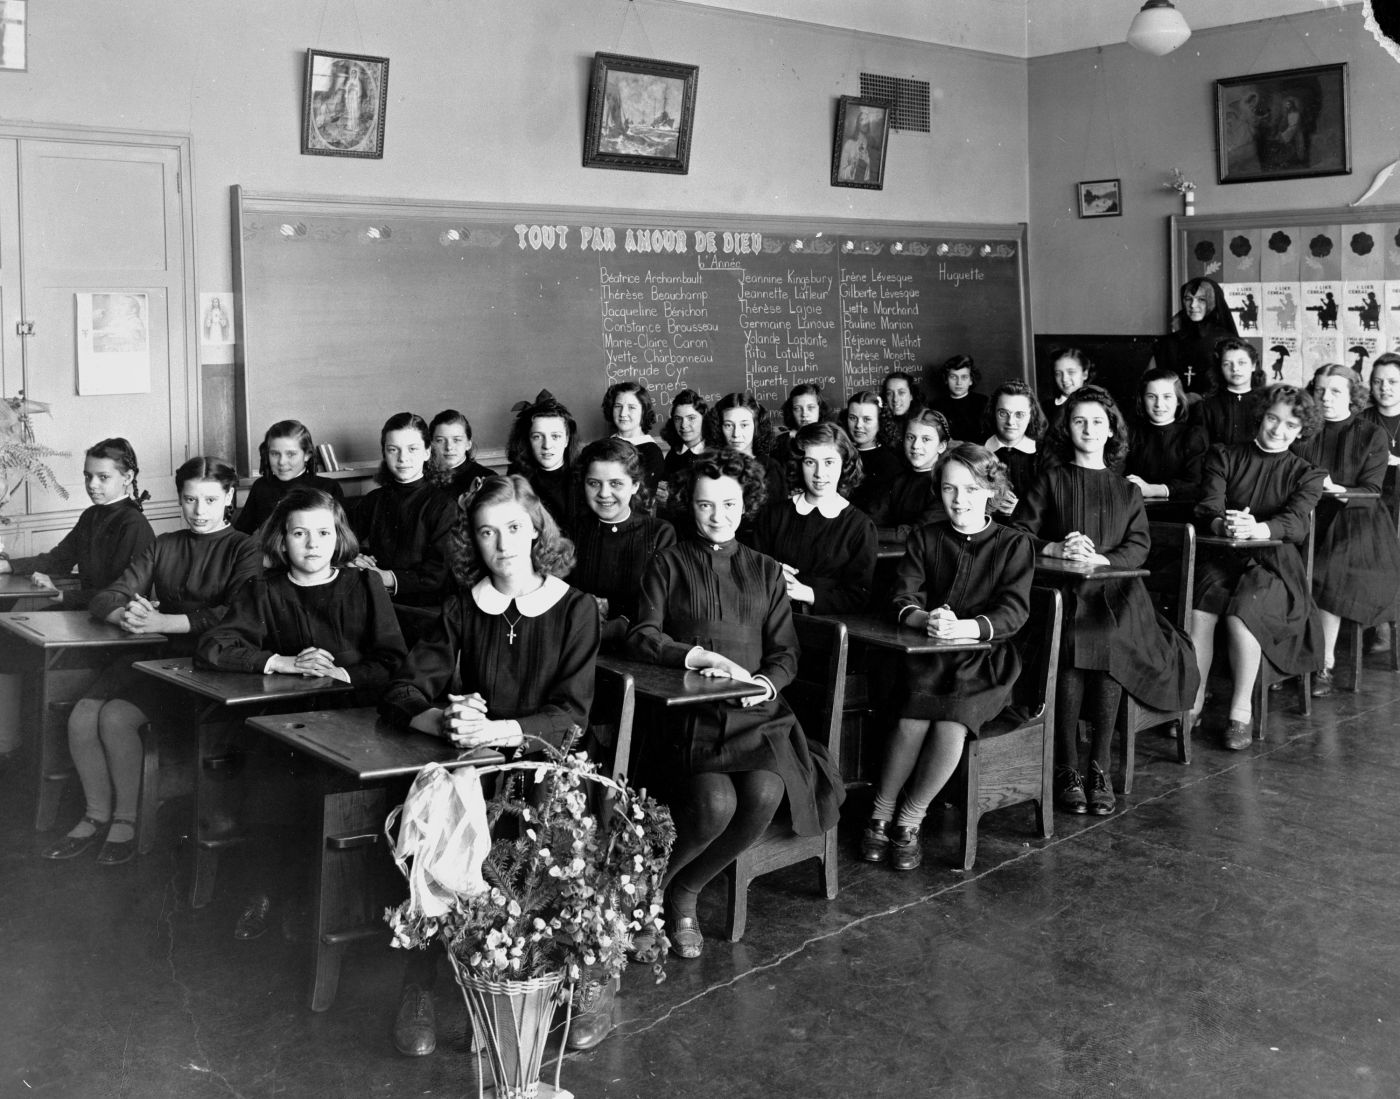 Black and white photograph of a classroom, viewed at an angle. Some thirty girls in black dresses are seated at desks arranged in seven rows. Each row contains four desks. A nun stands at the back of the classroom.